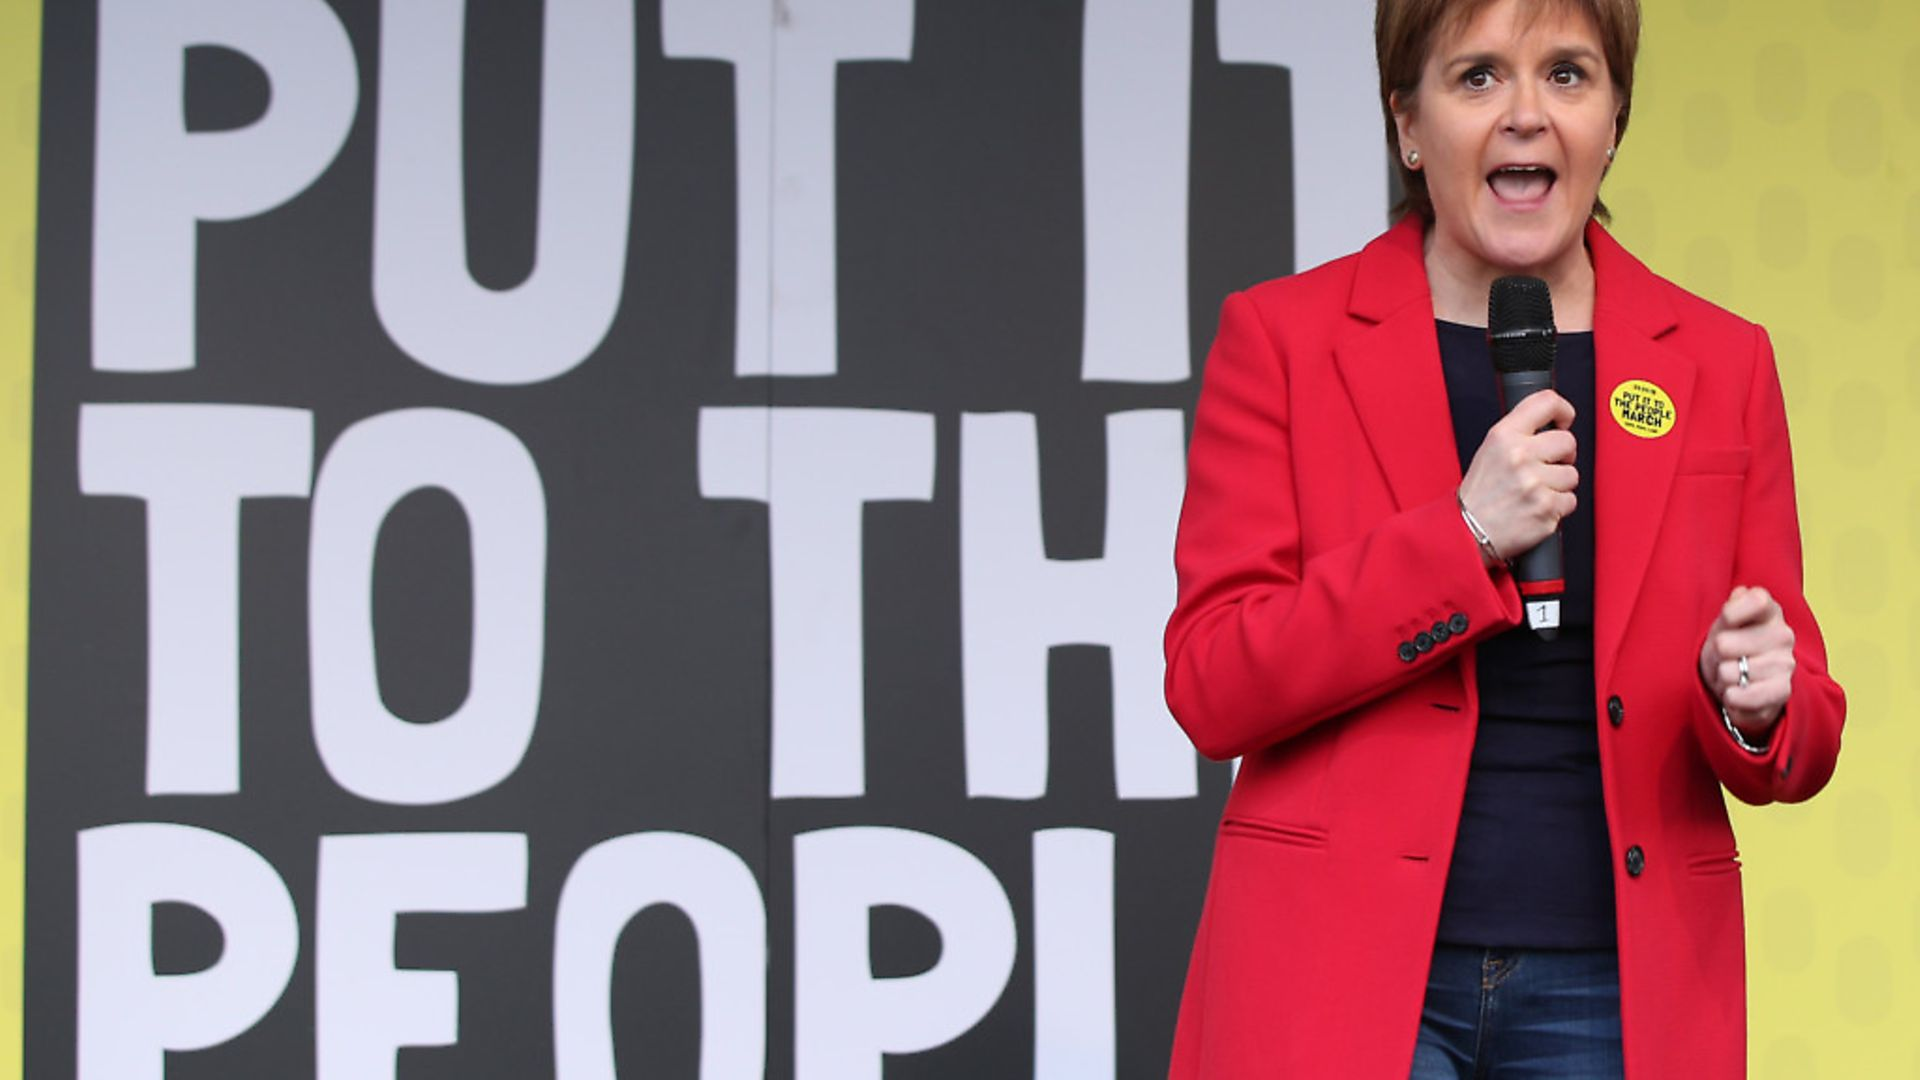 First Minister of Scotland Nicola Sturgeon addresses the People's Vote March in London. - Credit: PA Wire/PA Images